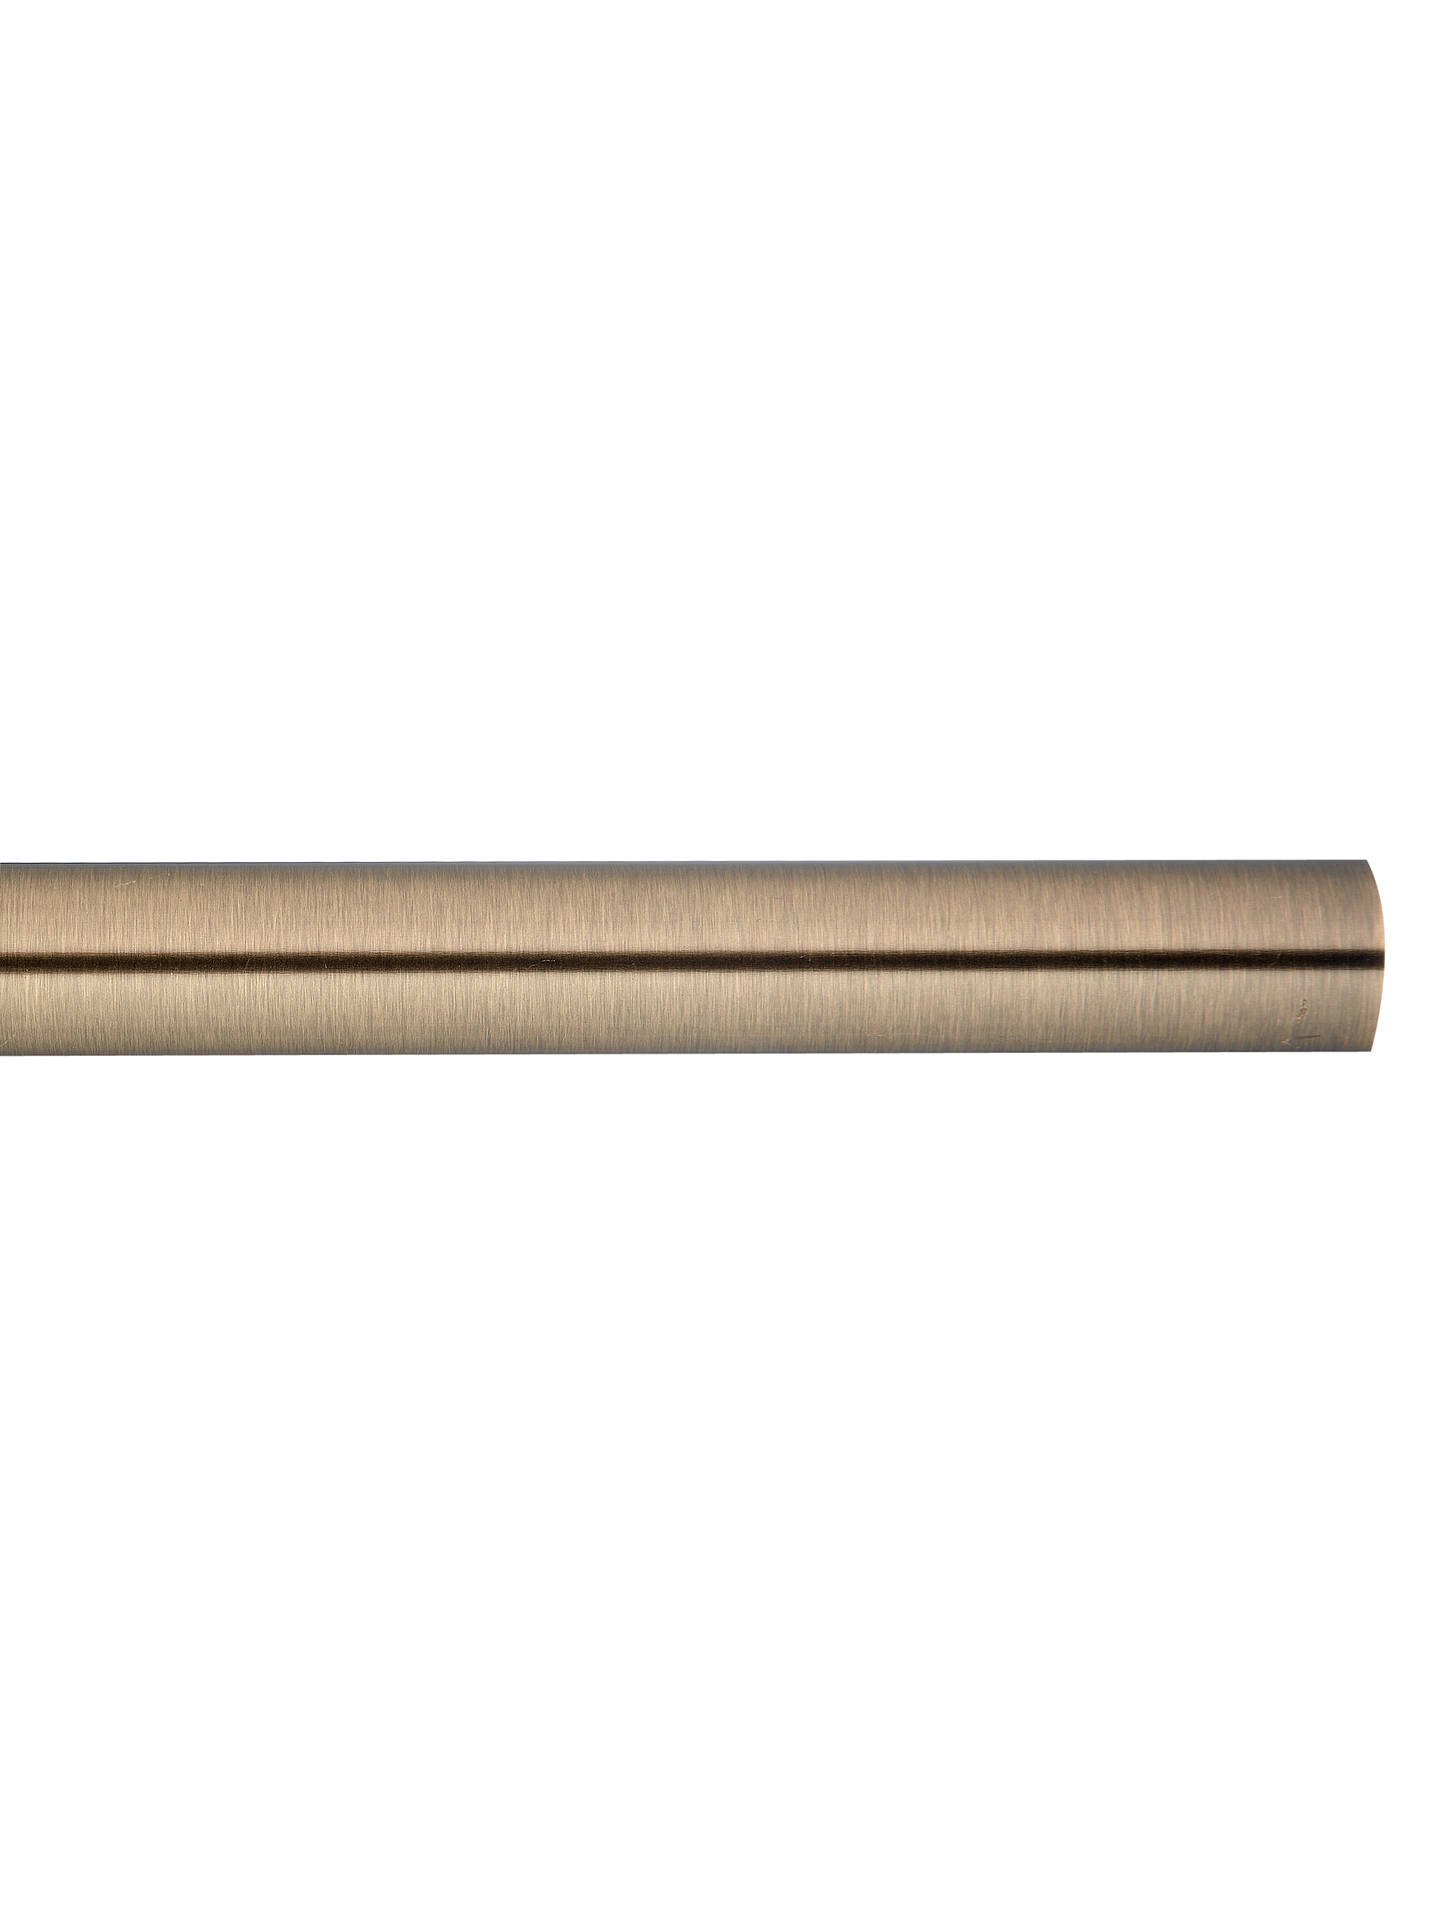 Buy John Lewis & Partners Antique Brass Curtain Pole, L180cm x Dia.28mm Online at johnlewis.com